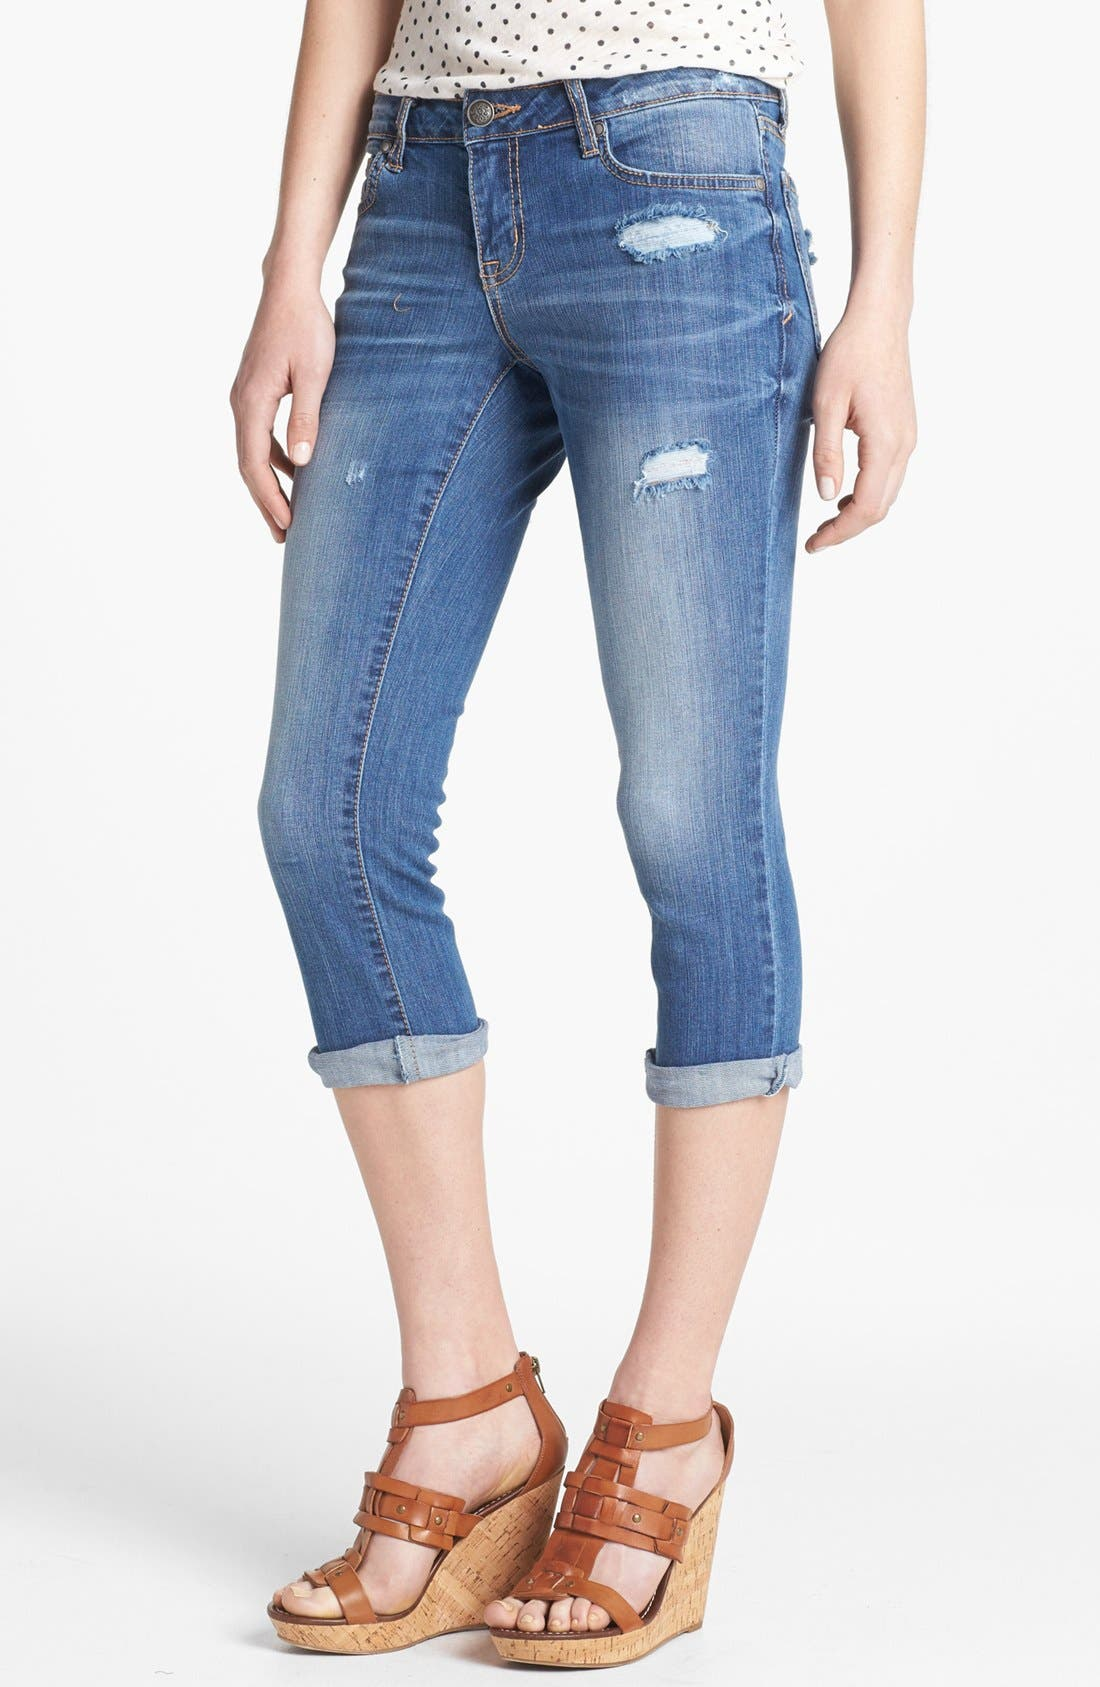 Alternate Image 1 Selected - Jessica Simpson 'Roe Clamdiggers' Destroyed Crop Jeans (Moscow Blue)